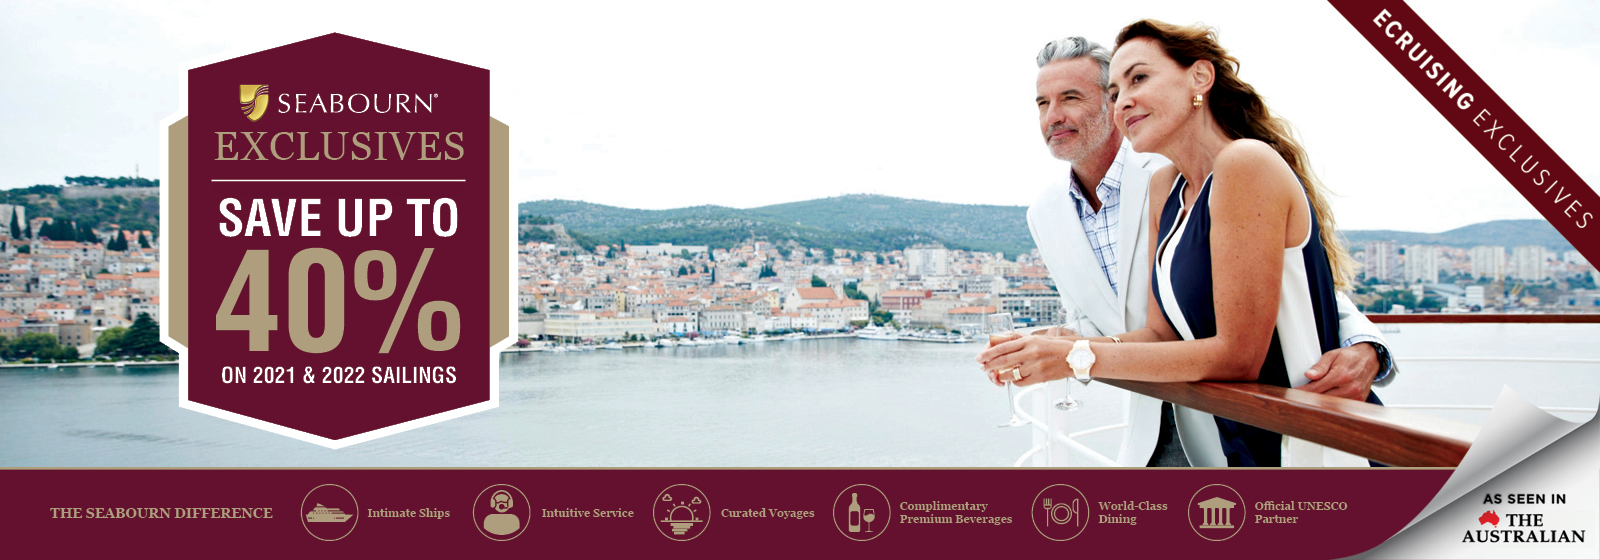 Seabourn Exclusives